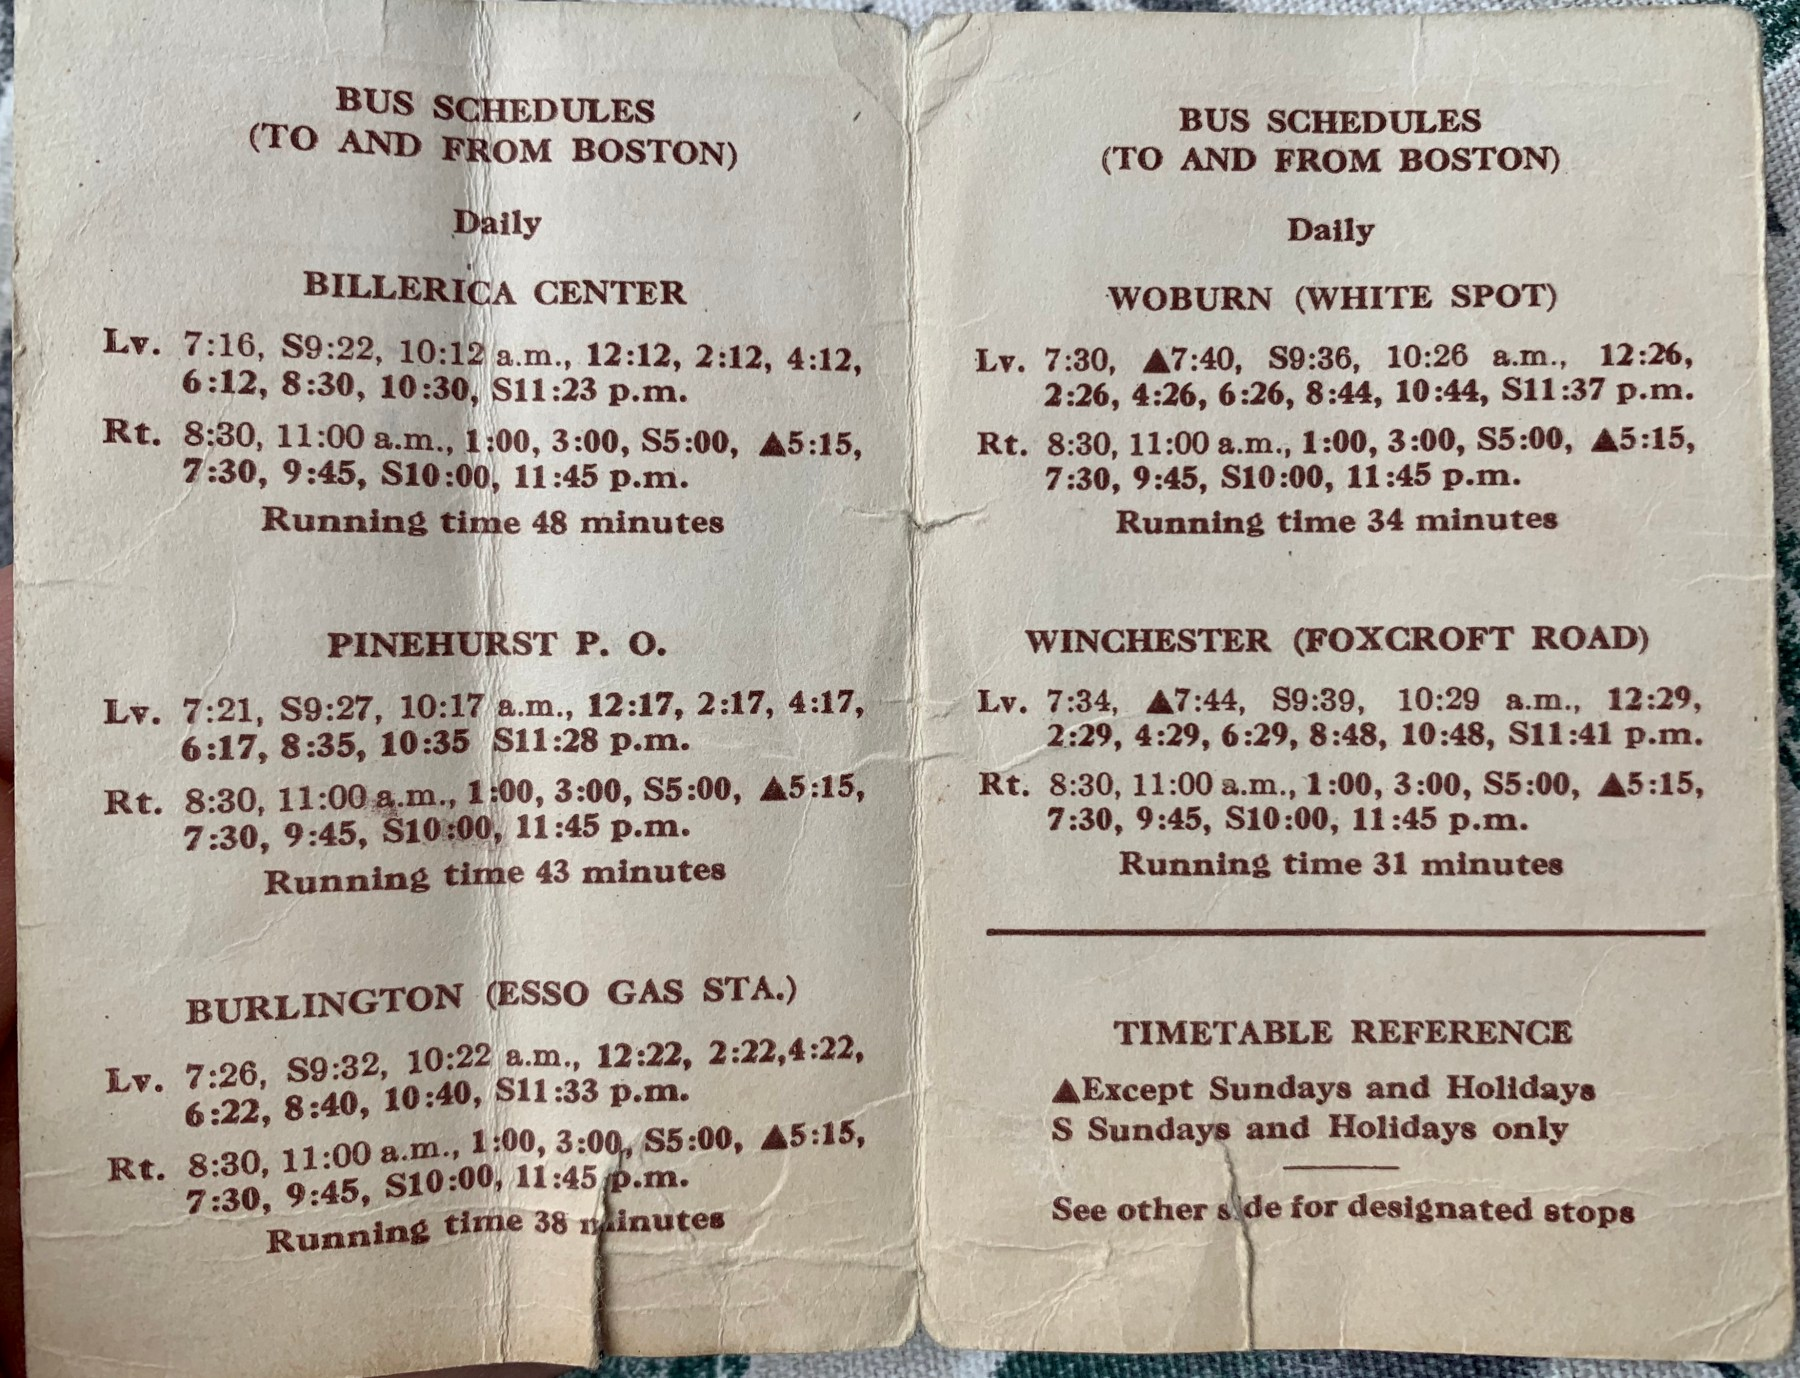 1952 bus schedule Boston to Lowell